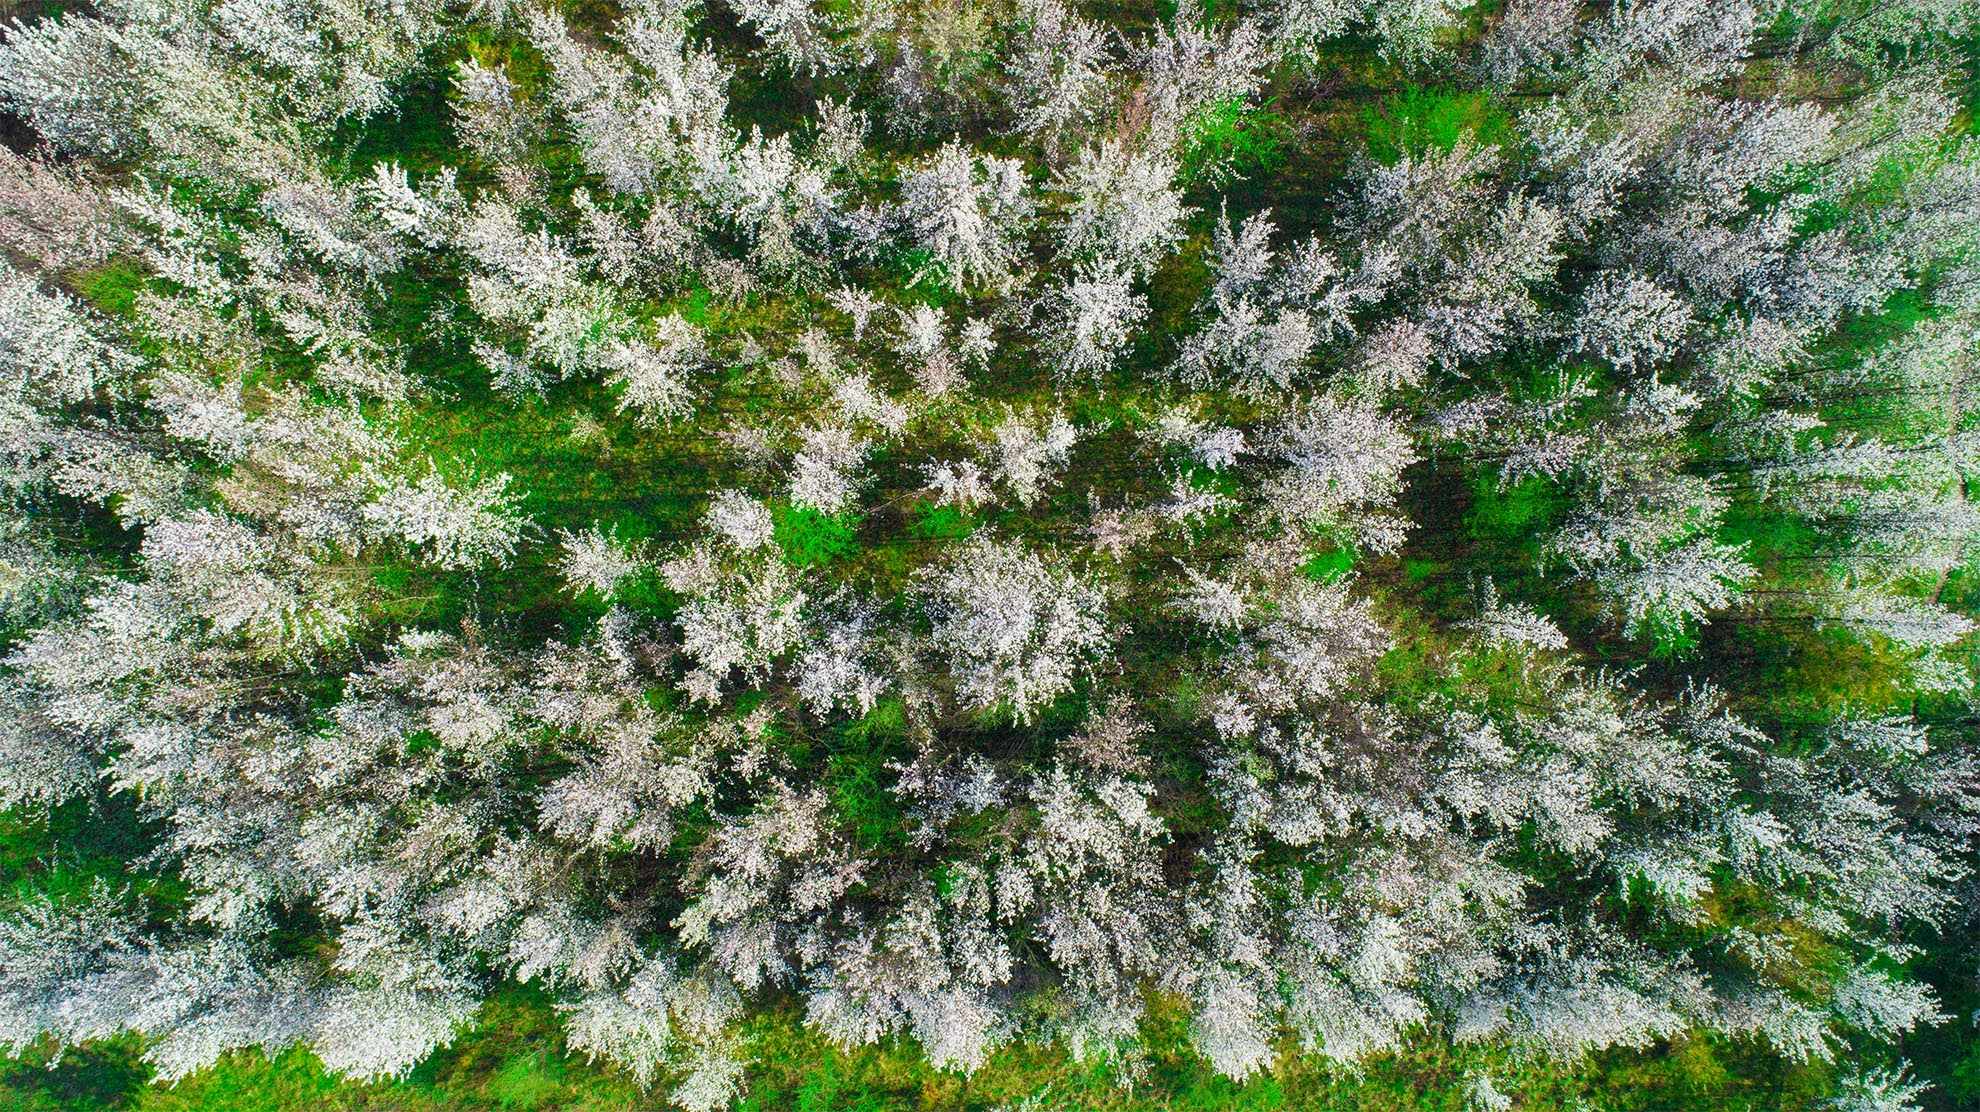 Drone Photograph of birds eye view of white flowering trees in the Spring